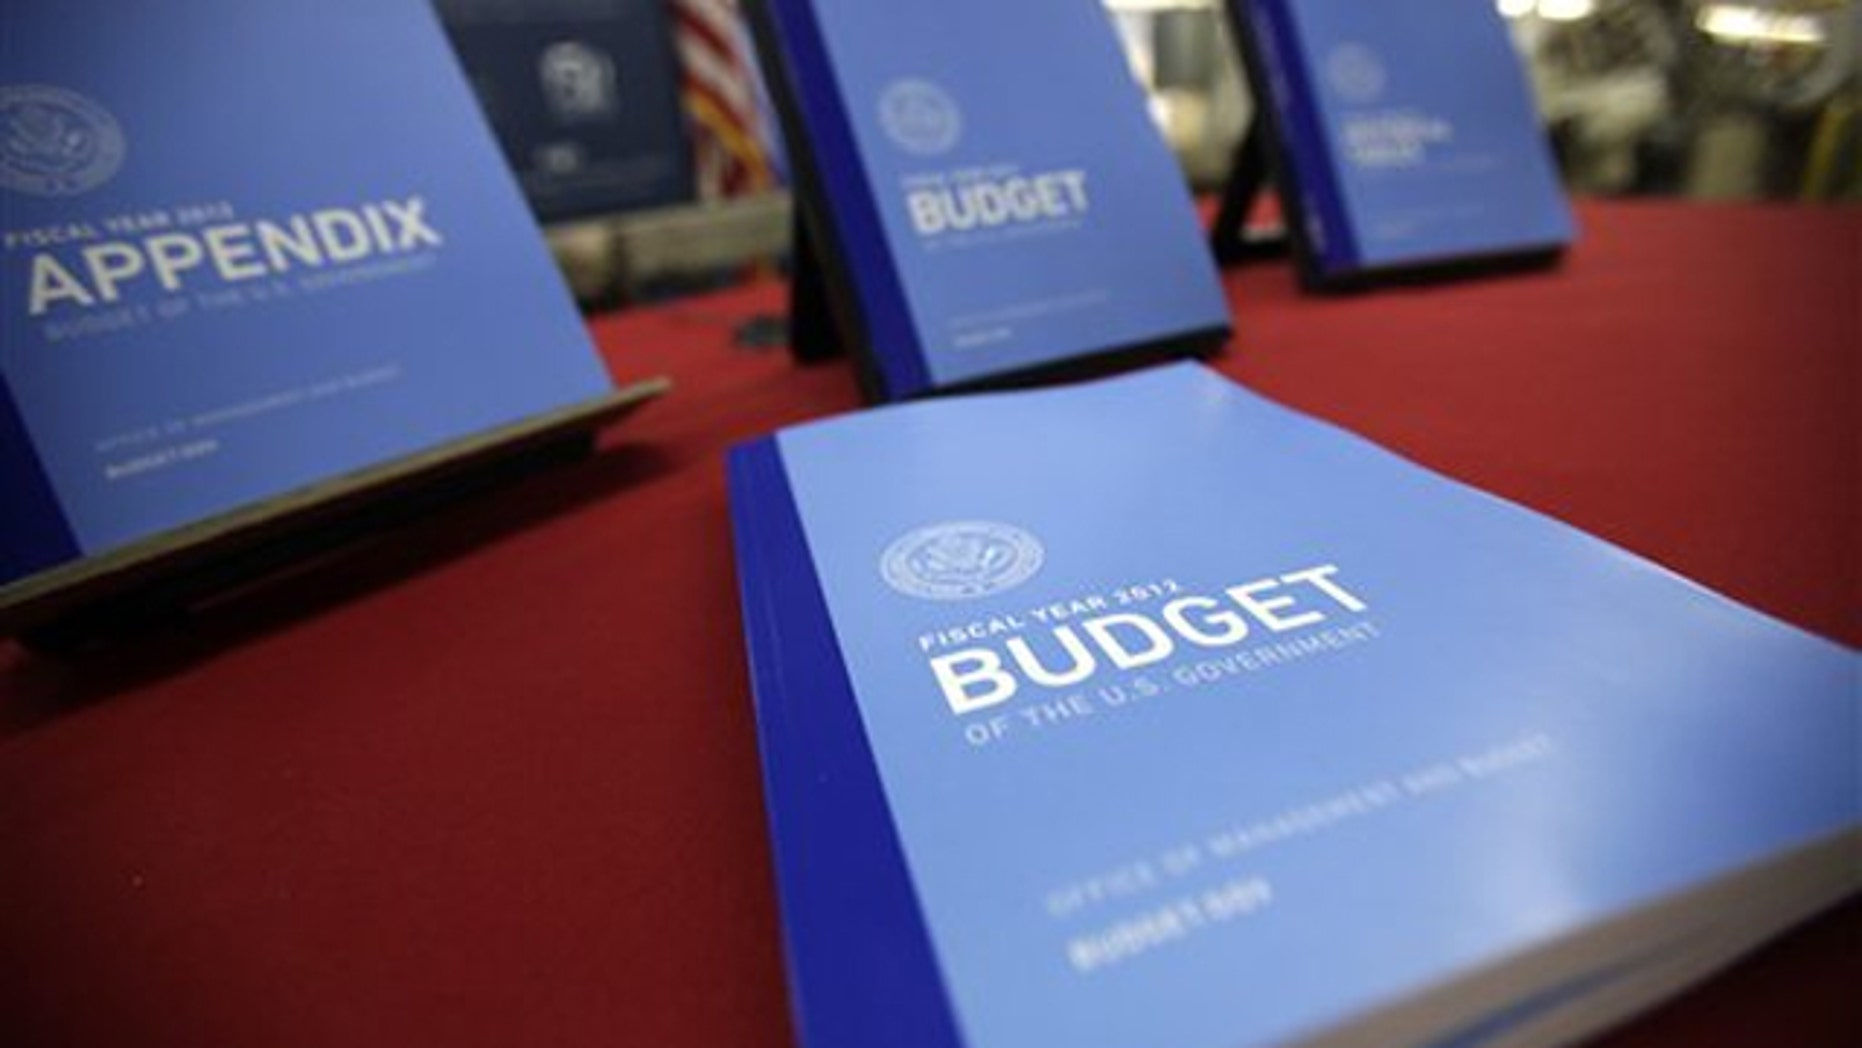 In this photo taken Feb. 10, the 2012 budget is on display at the U.S. Government Printing Office in Washington.